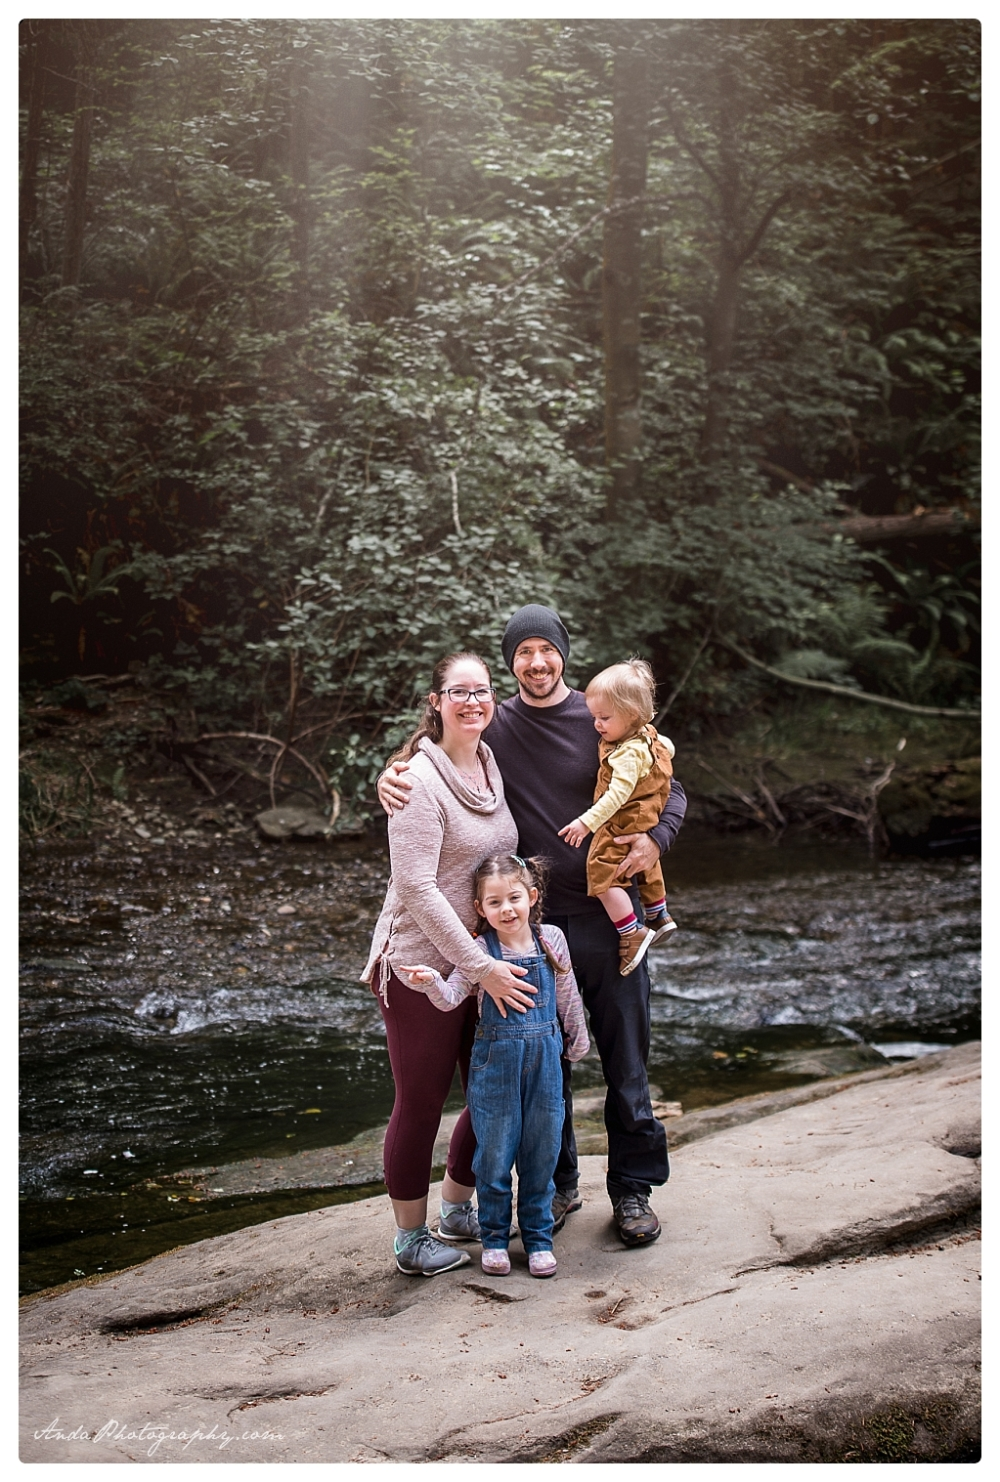 Anda Photography, Bellingham family photographer, Whatcom Falls Park family photos_0017